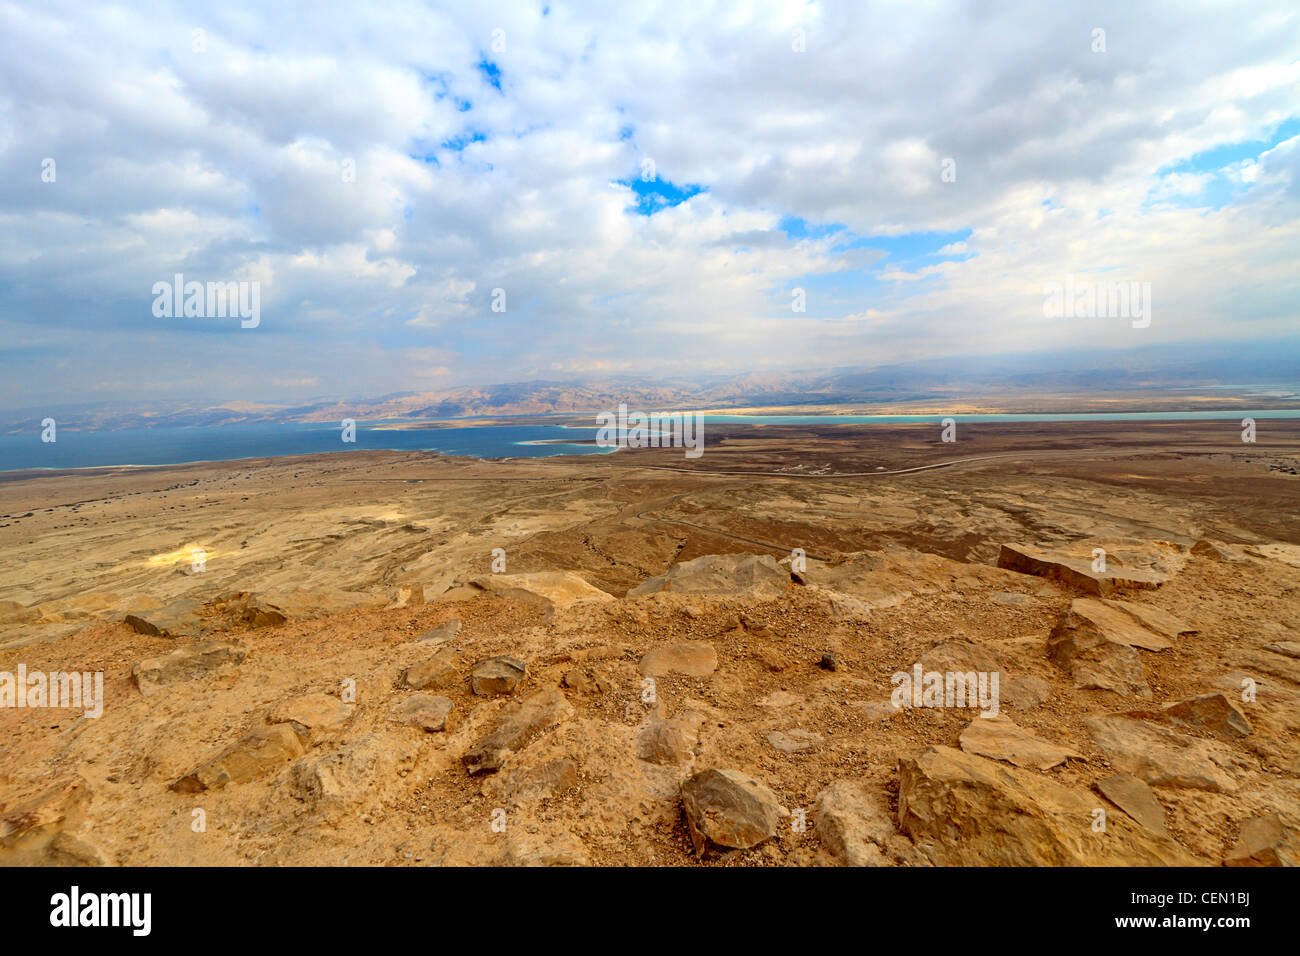 View of surrounding land and the Dead Sea from Masada, an ancient Jewish fortress in the desert of Israel - Stock Image